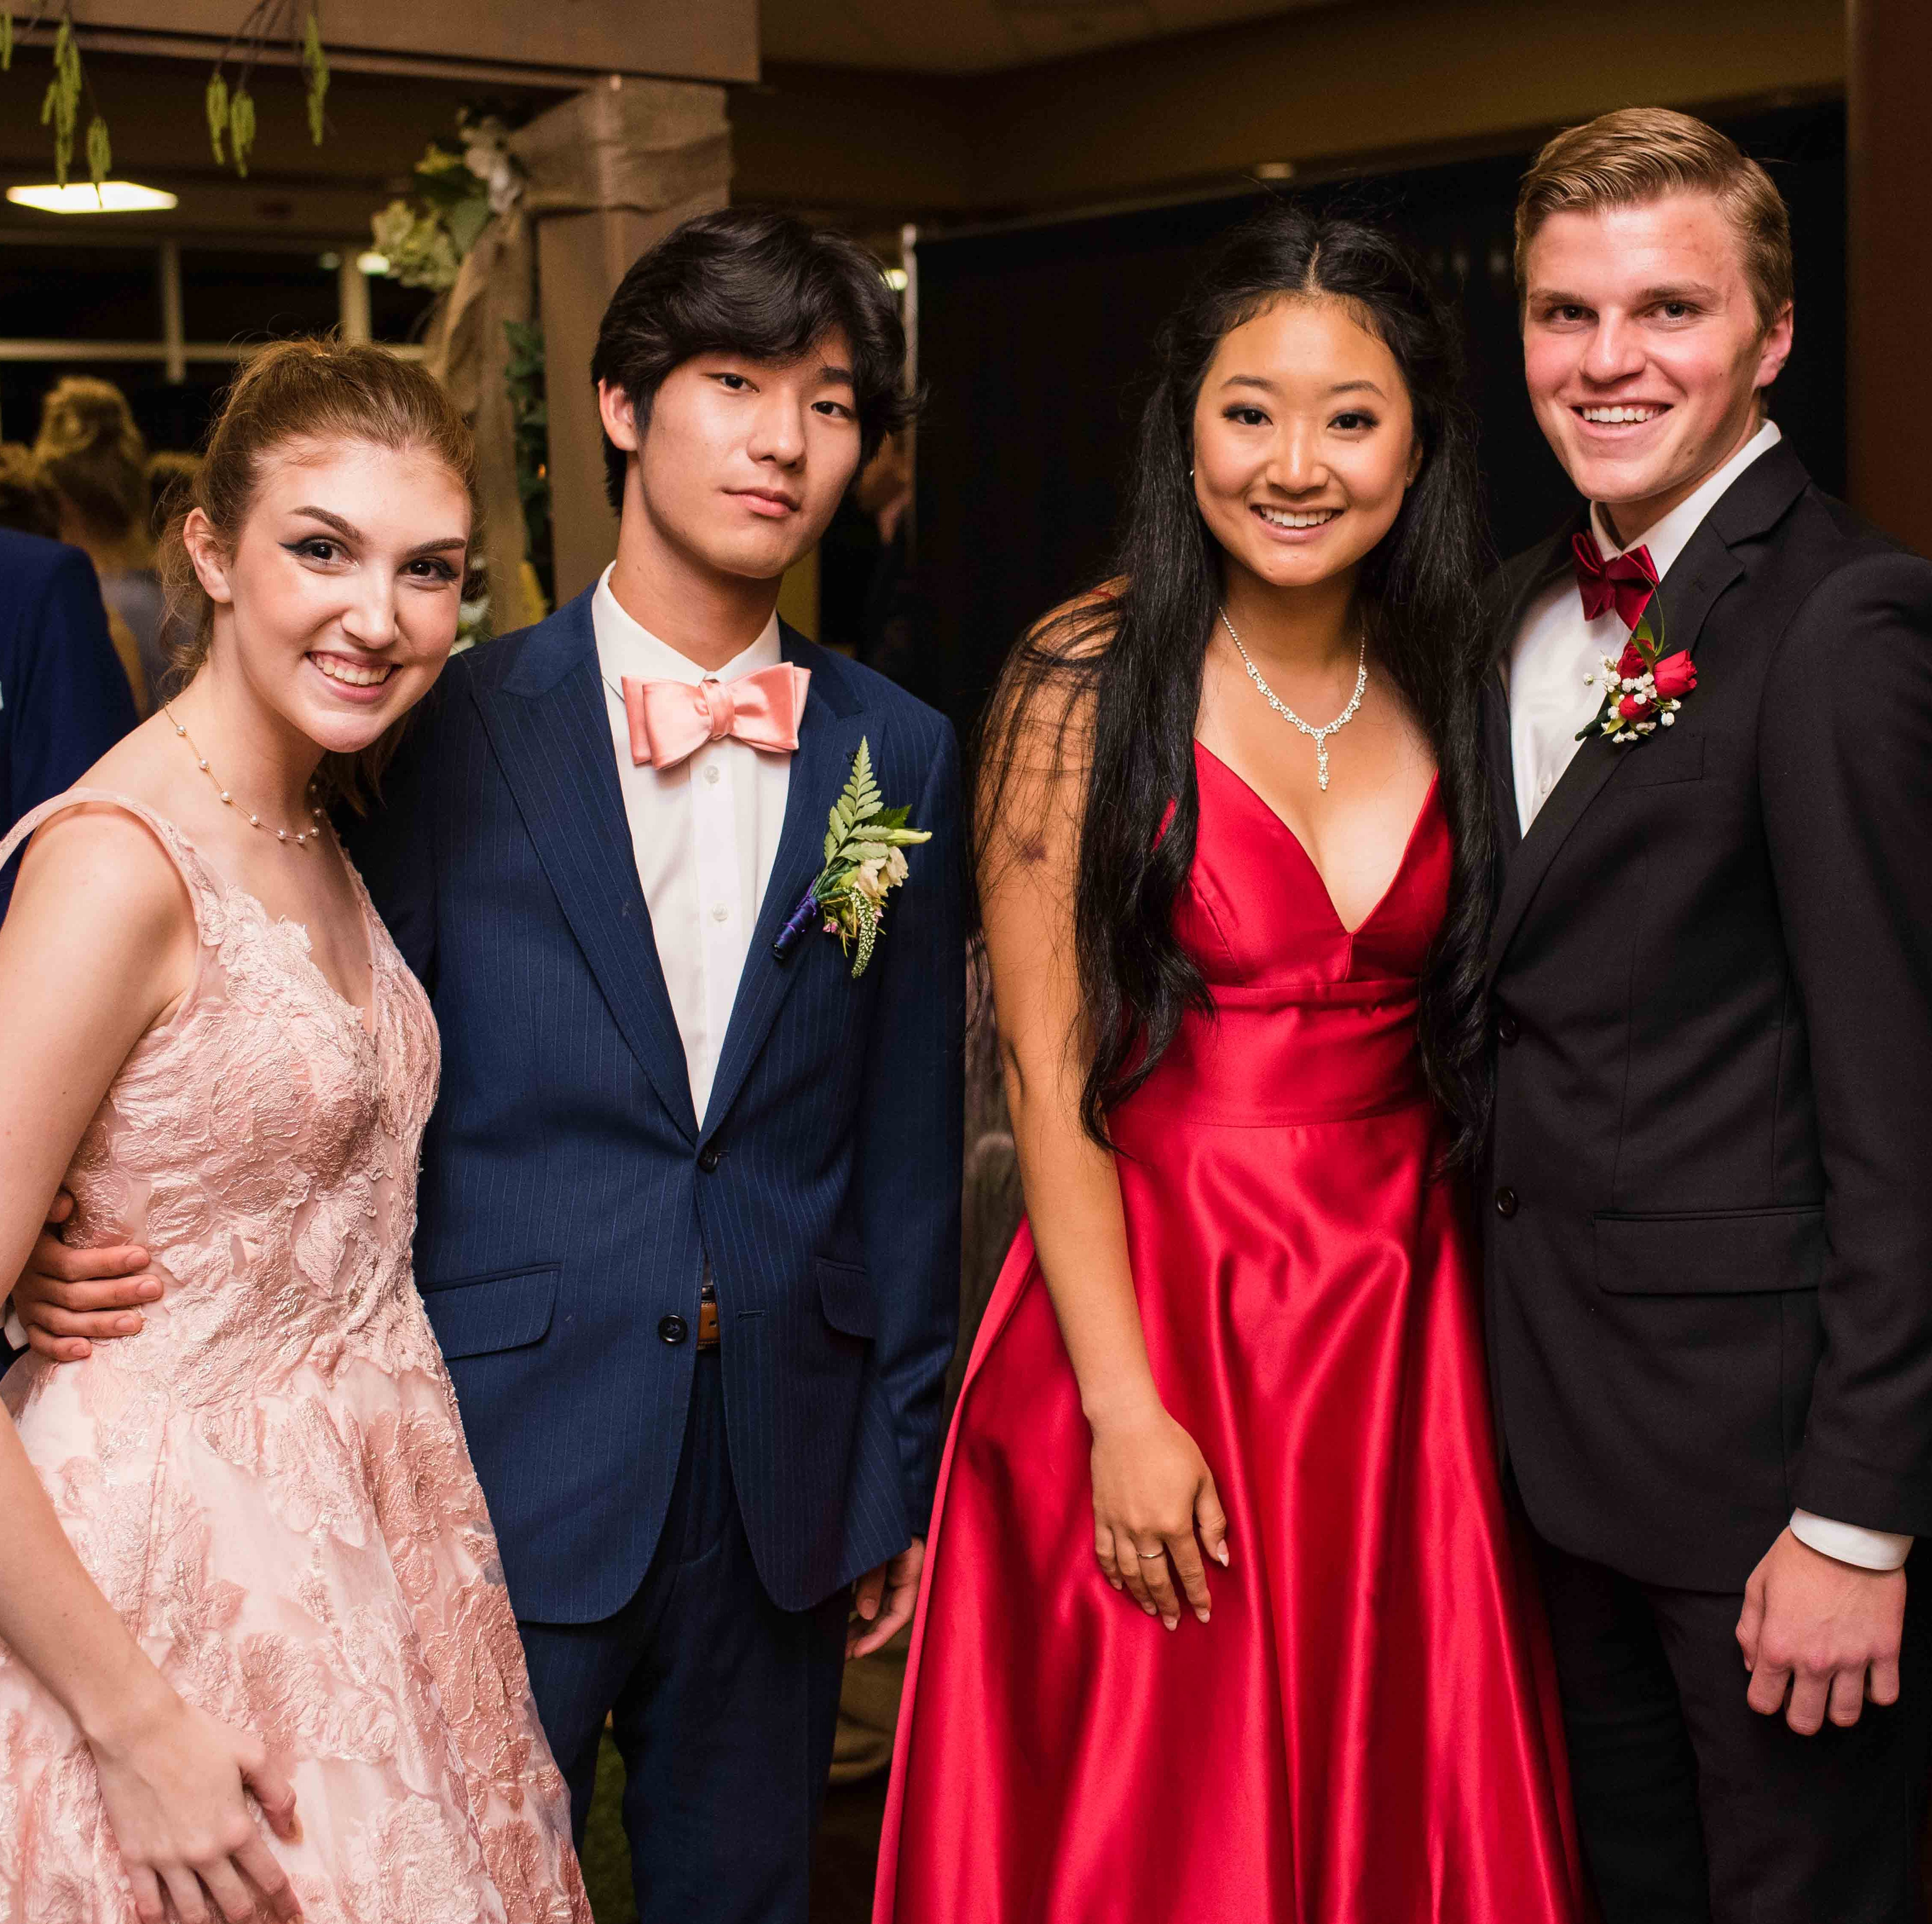 Rossview High celebrates 'A Midsummer Night's Dream' for 2019 prom